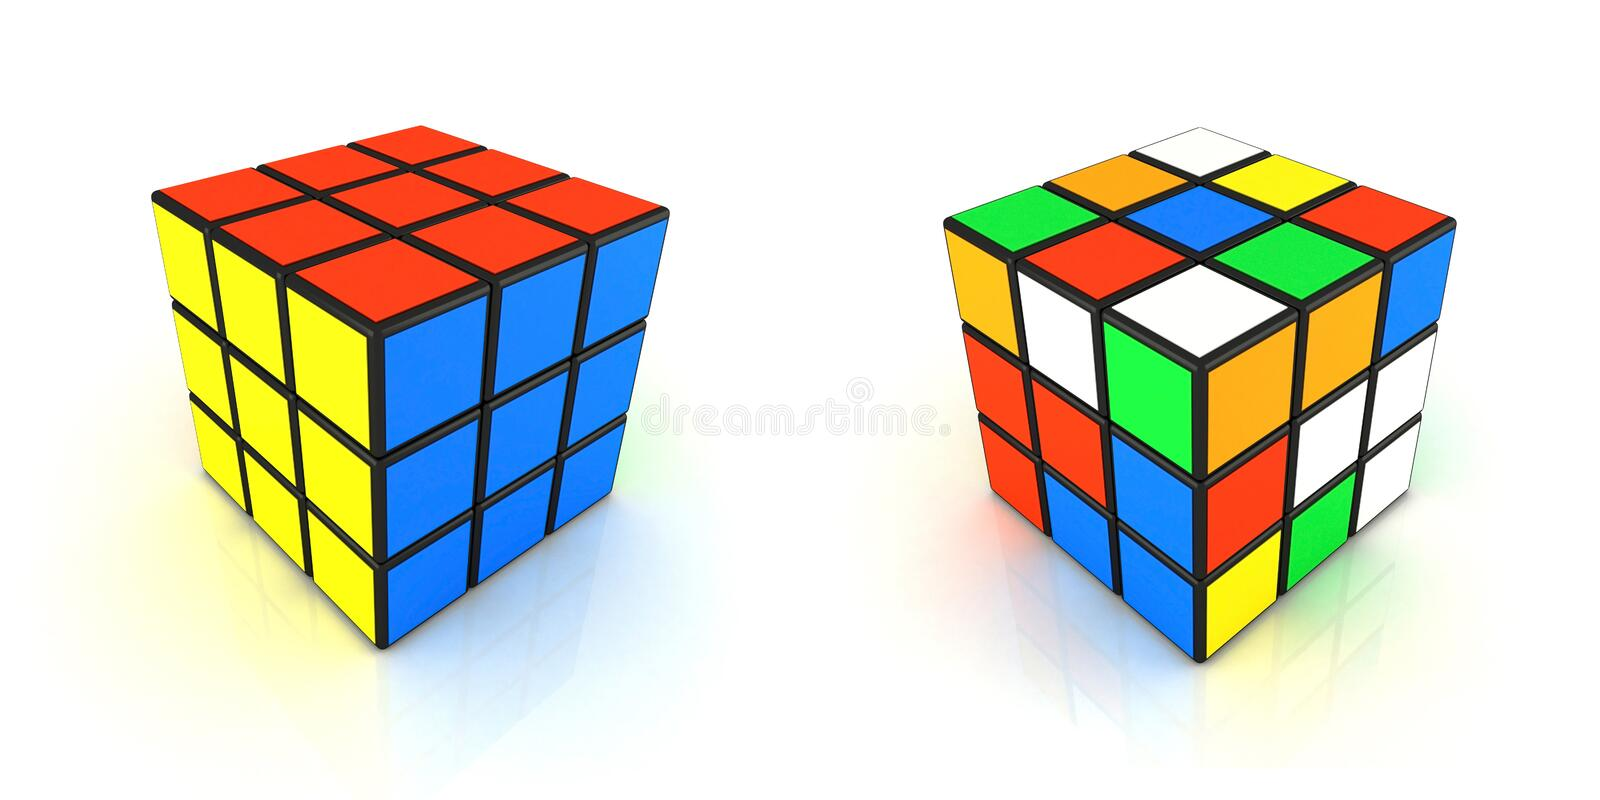 Cubo 2in1 de Rubiks imagem de stock royalty free